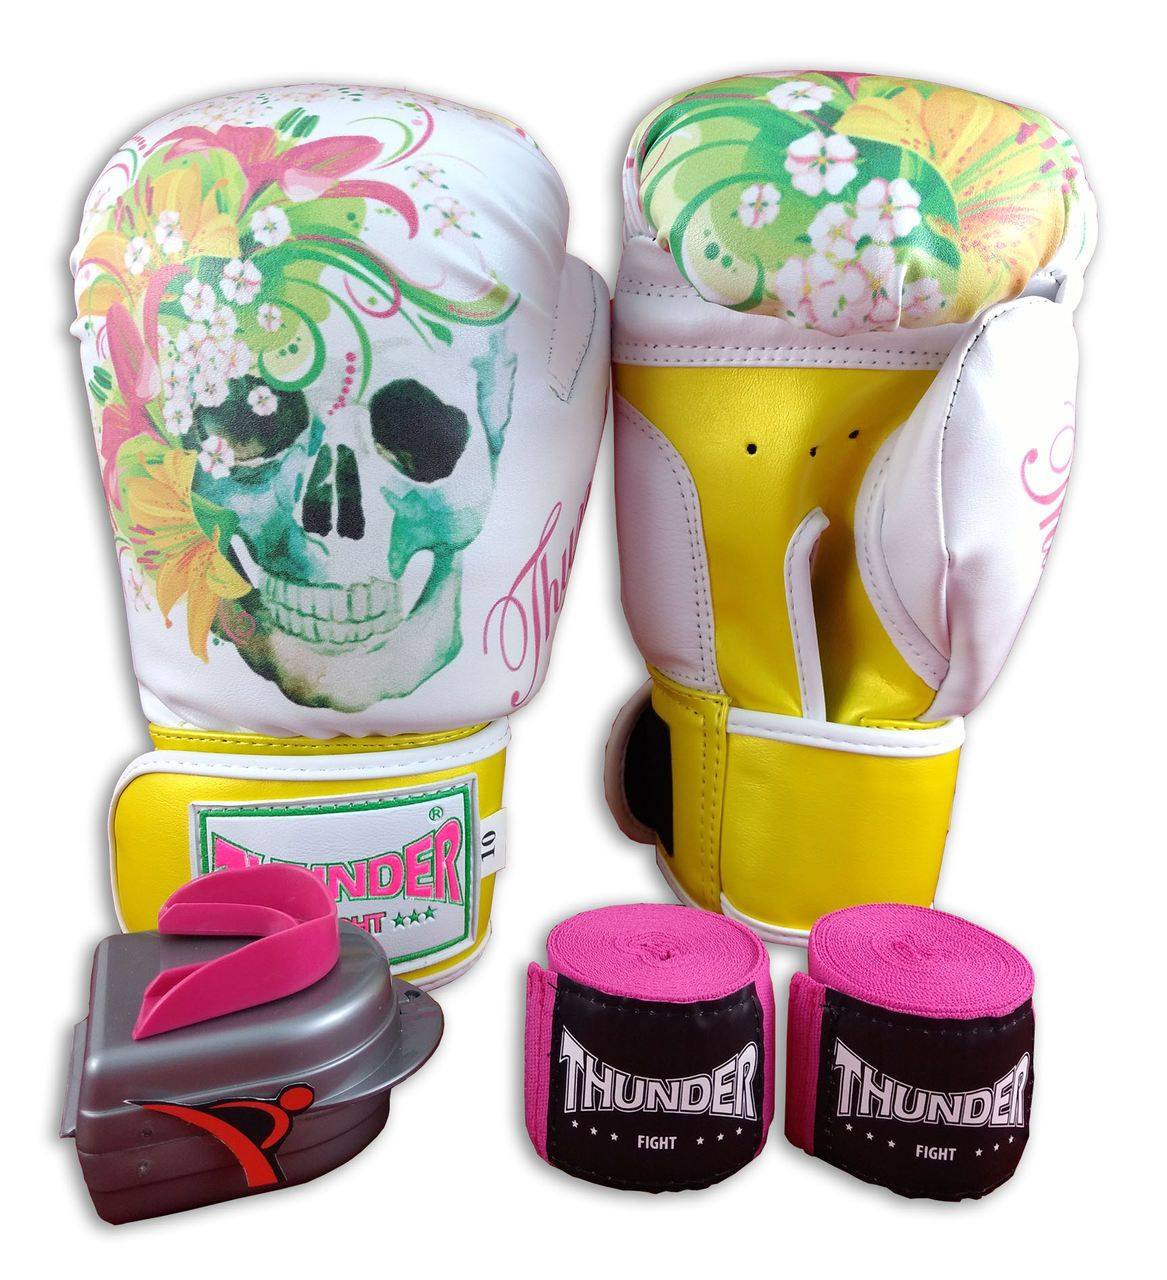 Kit de Boxe / Muay Thai Feminino 10oz - Caveira Amarela - Thunder Fight   - PRALUTA SHOP